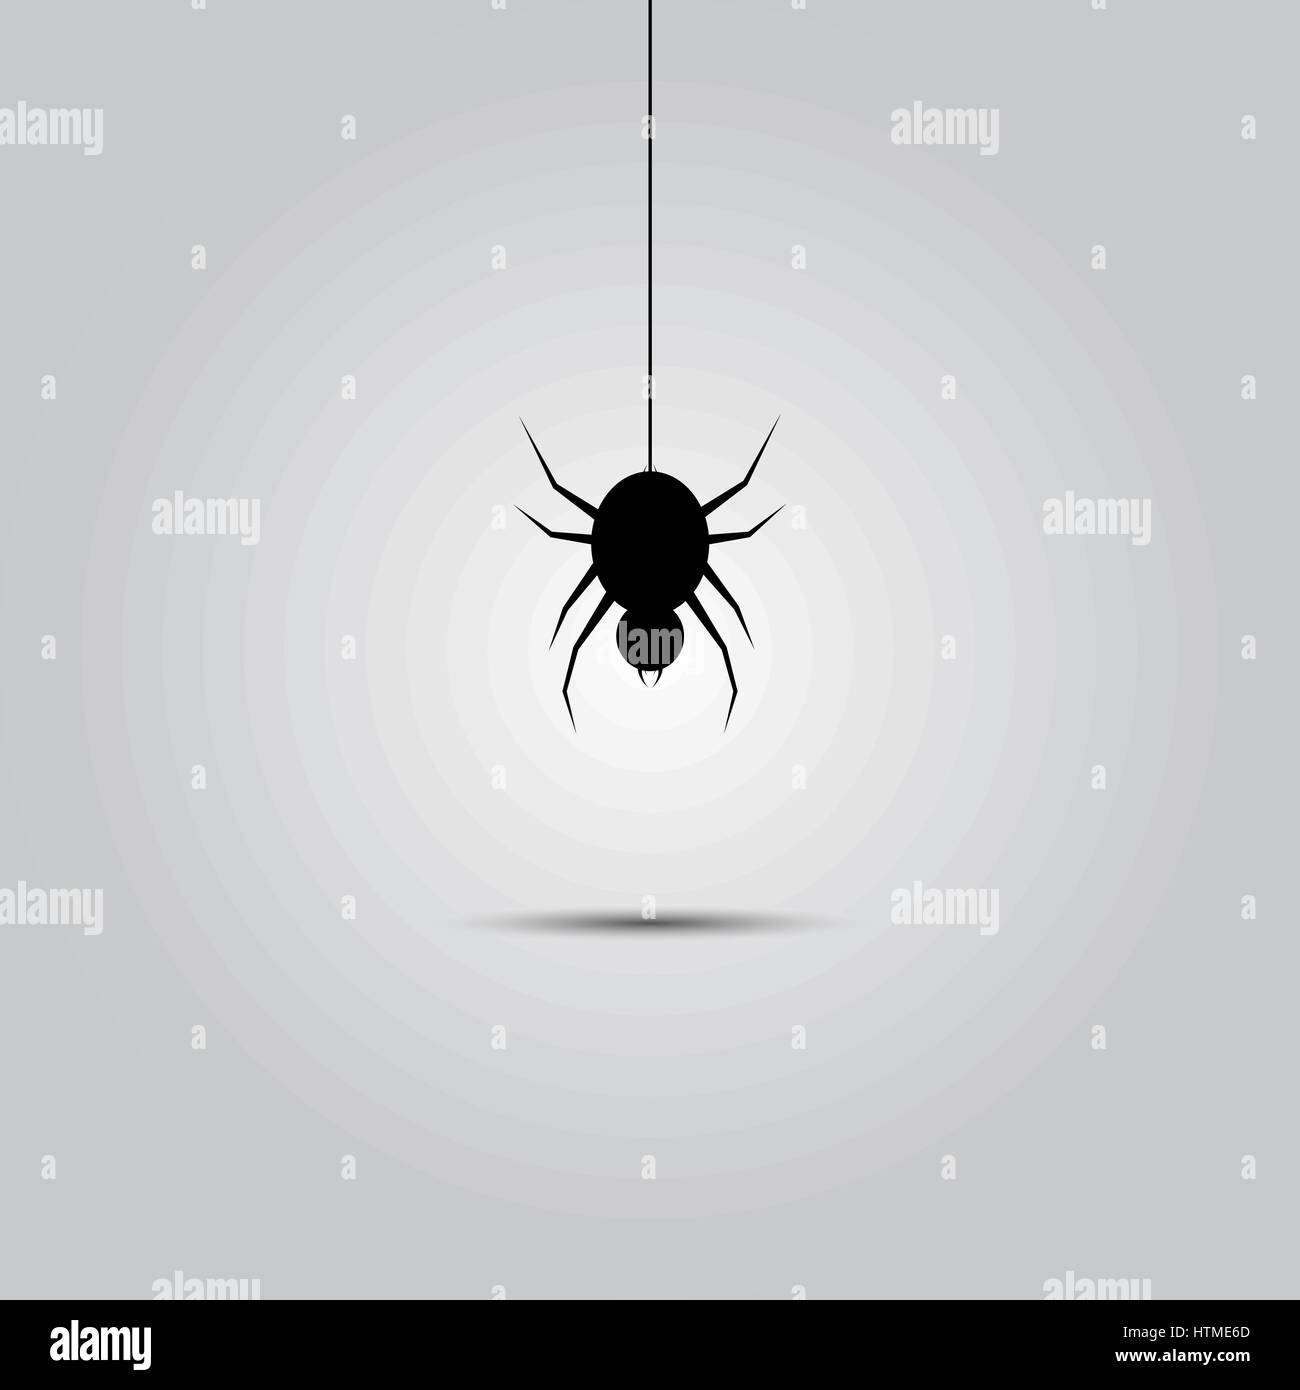 Flat Spider Stockfotos & Flat Spider Bilder - Alamy